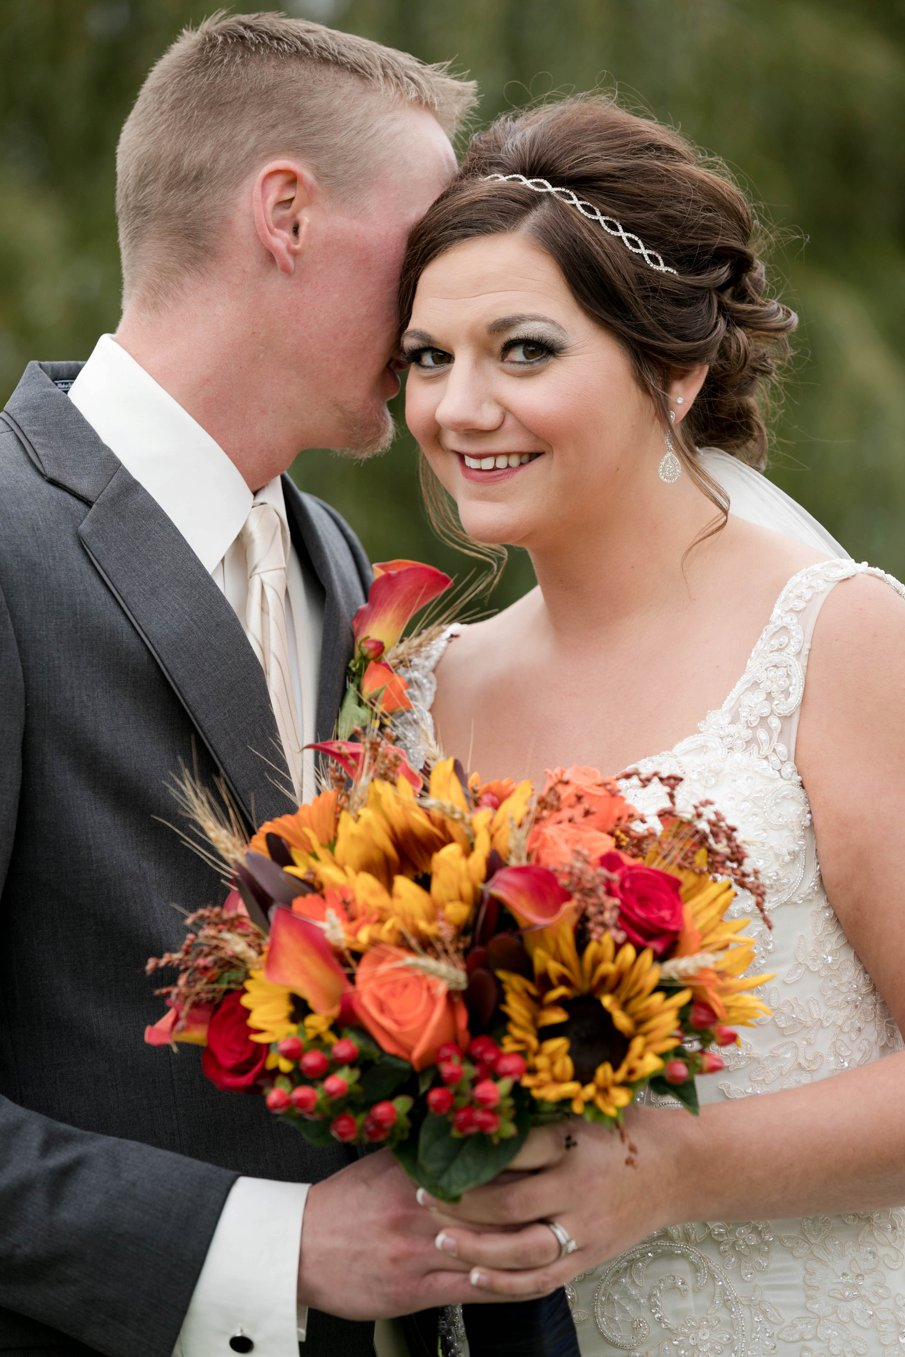 Alice Hq Photography Annie + Ben | Southern MN Weddings14.jpg